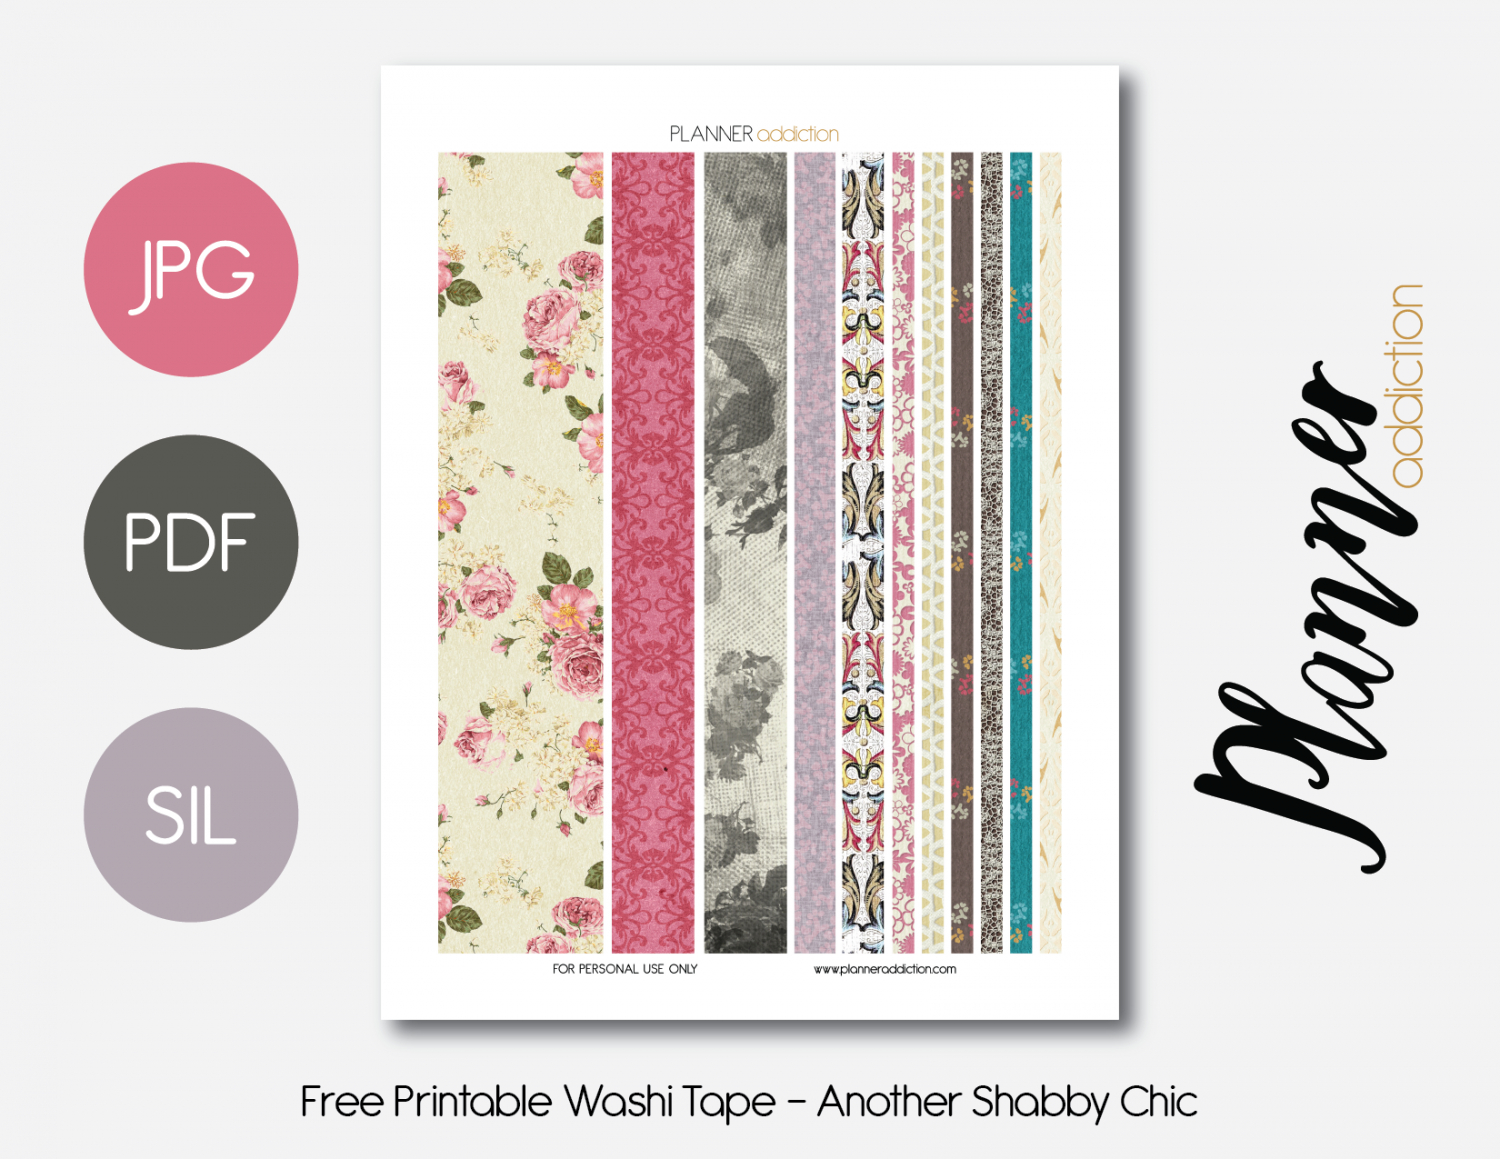 Free Printable Washi Tape - Another Shabby Chic | Organization - Free Printable Washi Tape